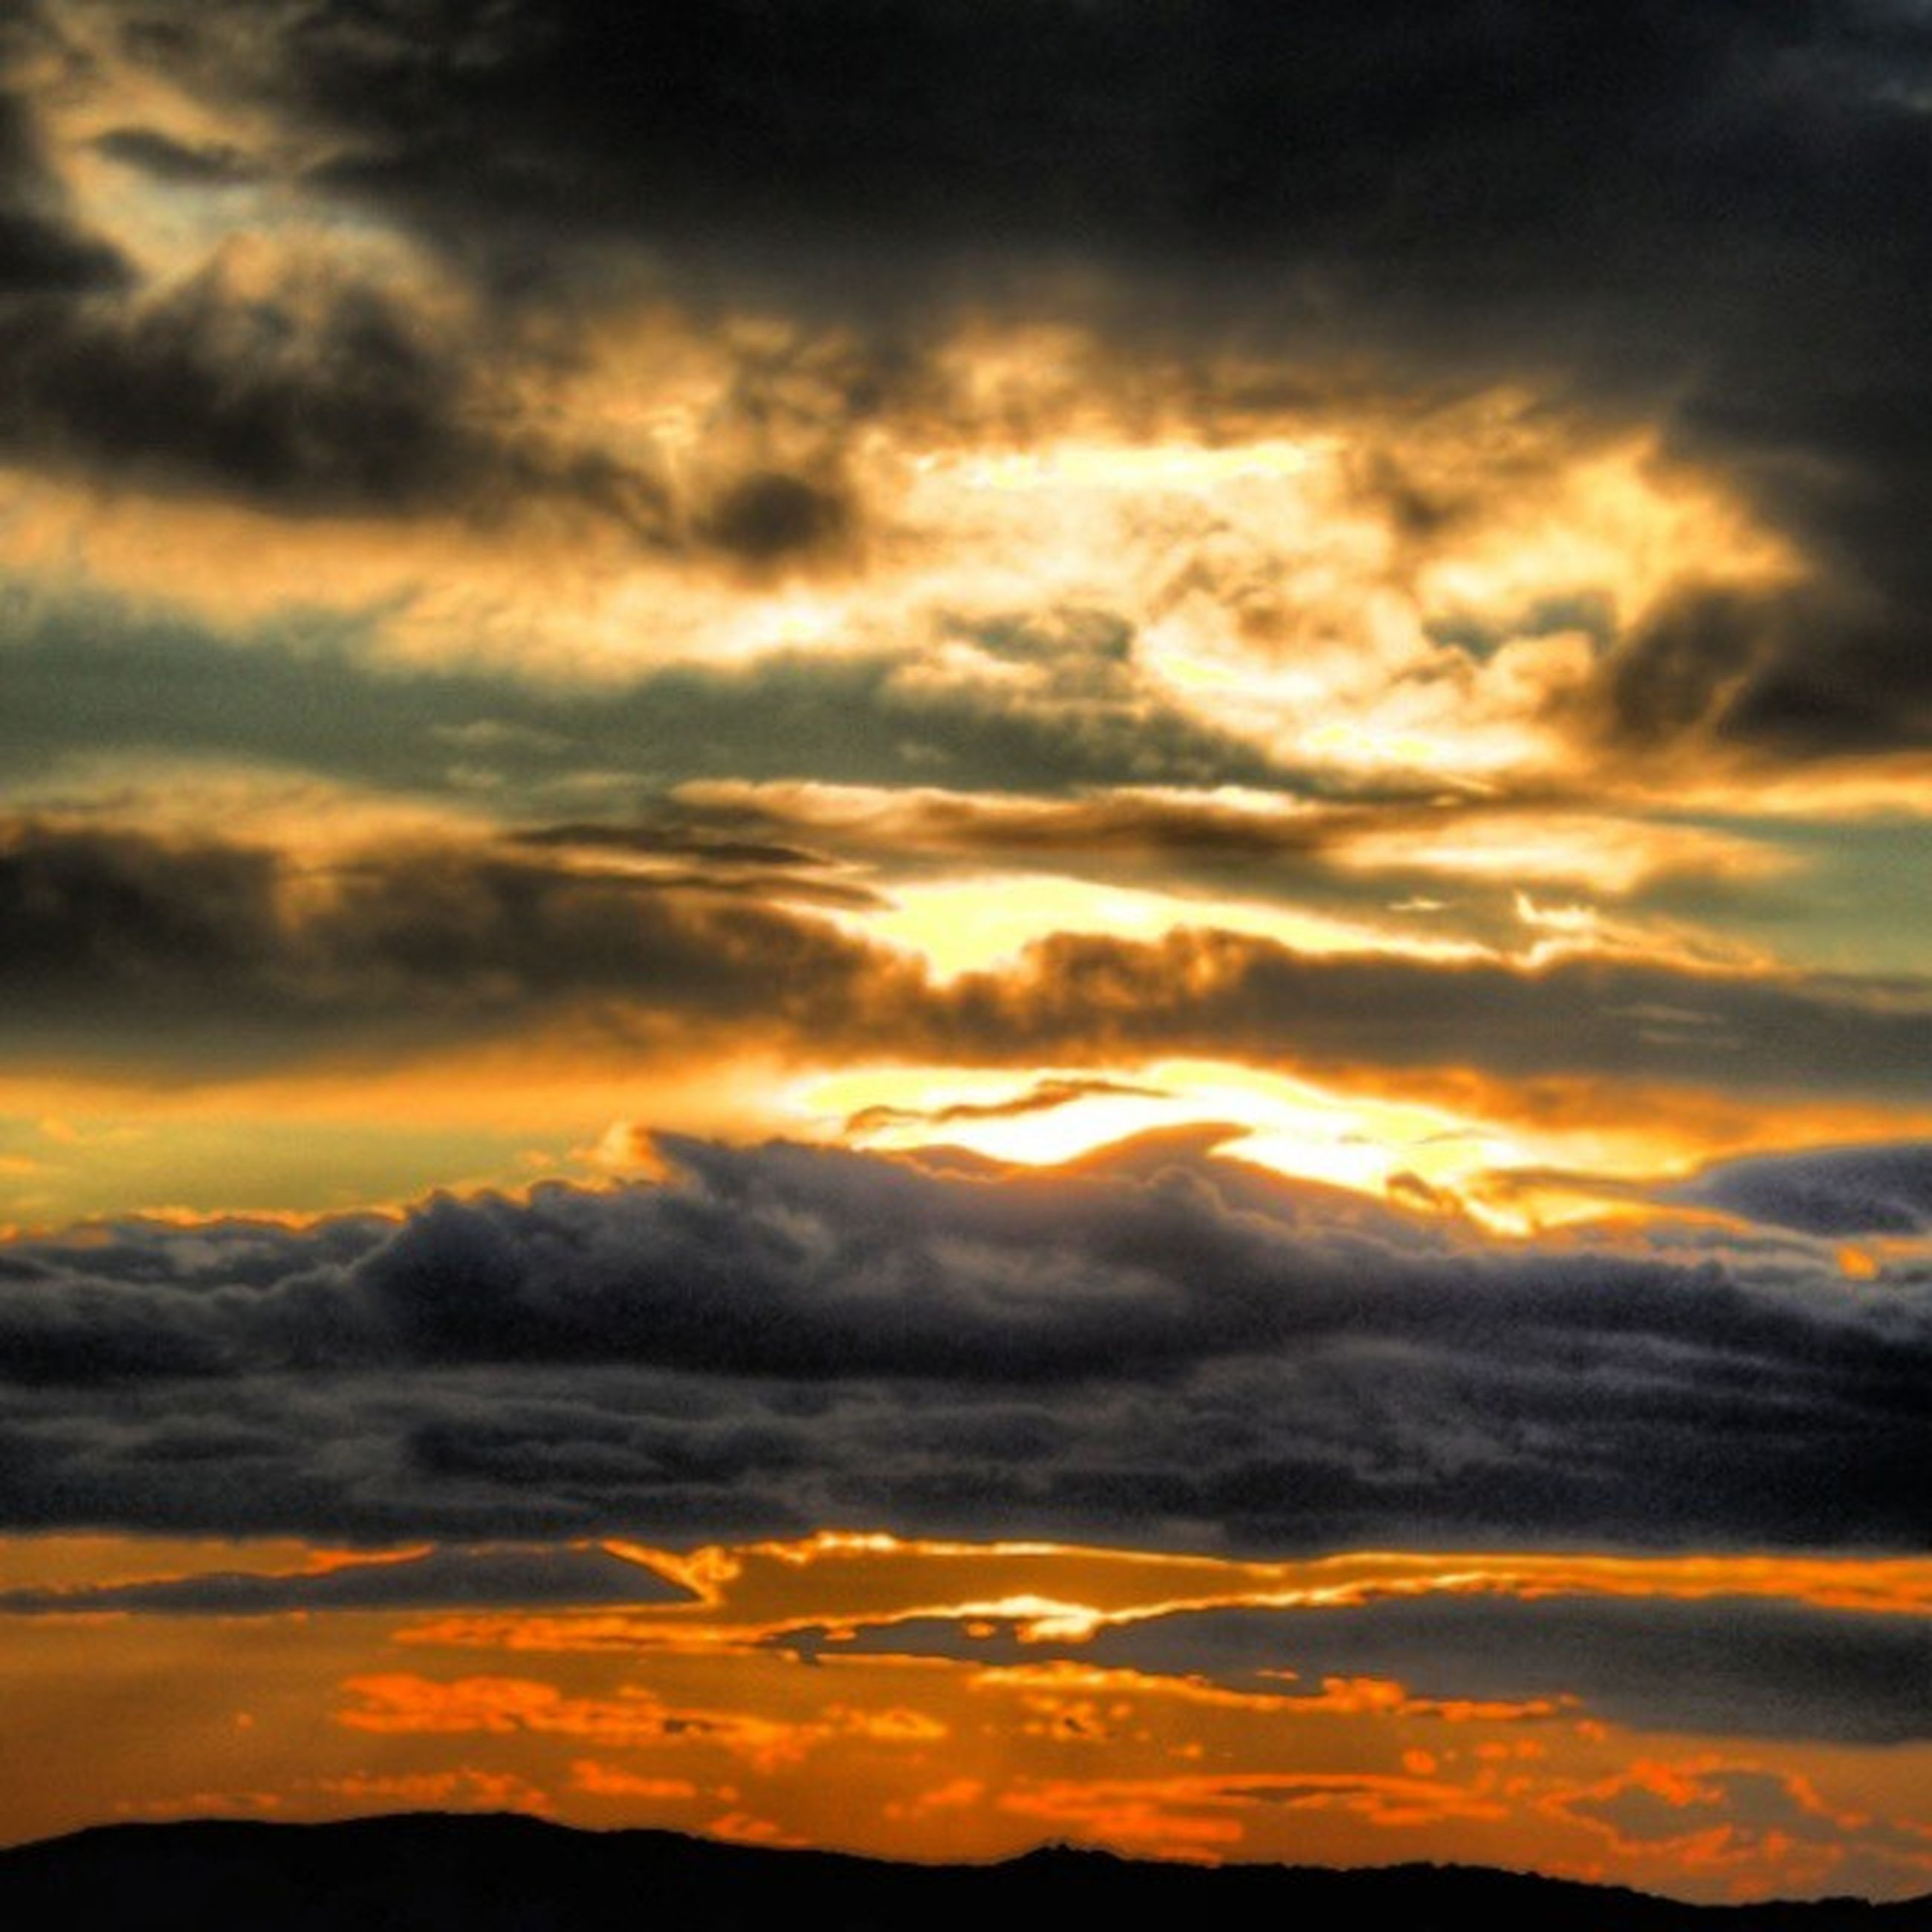 sunset, sky, scenics, orange color, beauty in nature, tranquil scene, tranquility, cloud - sky, dramatic sky, nature, idyllic, silhouette, cloudscape, cloudy, cloud, majestic, low angle view, weather, moody sky, atmospheric mood